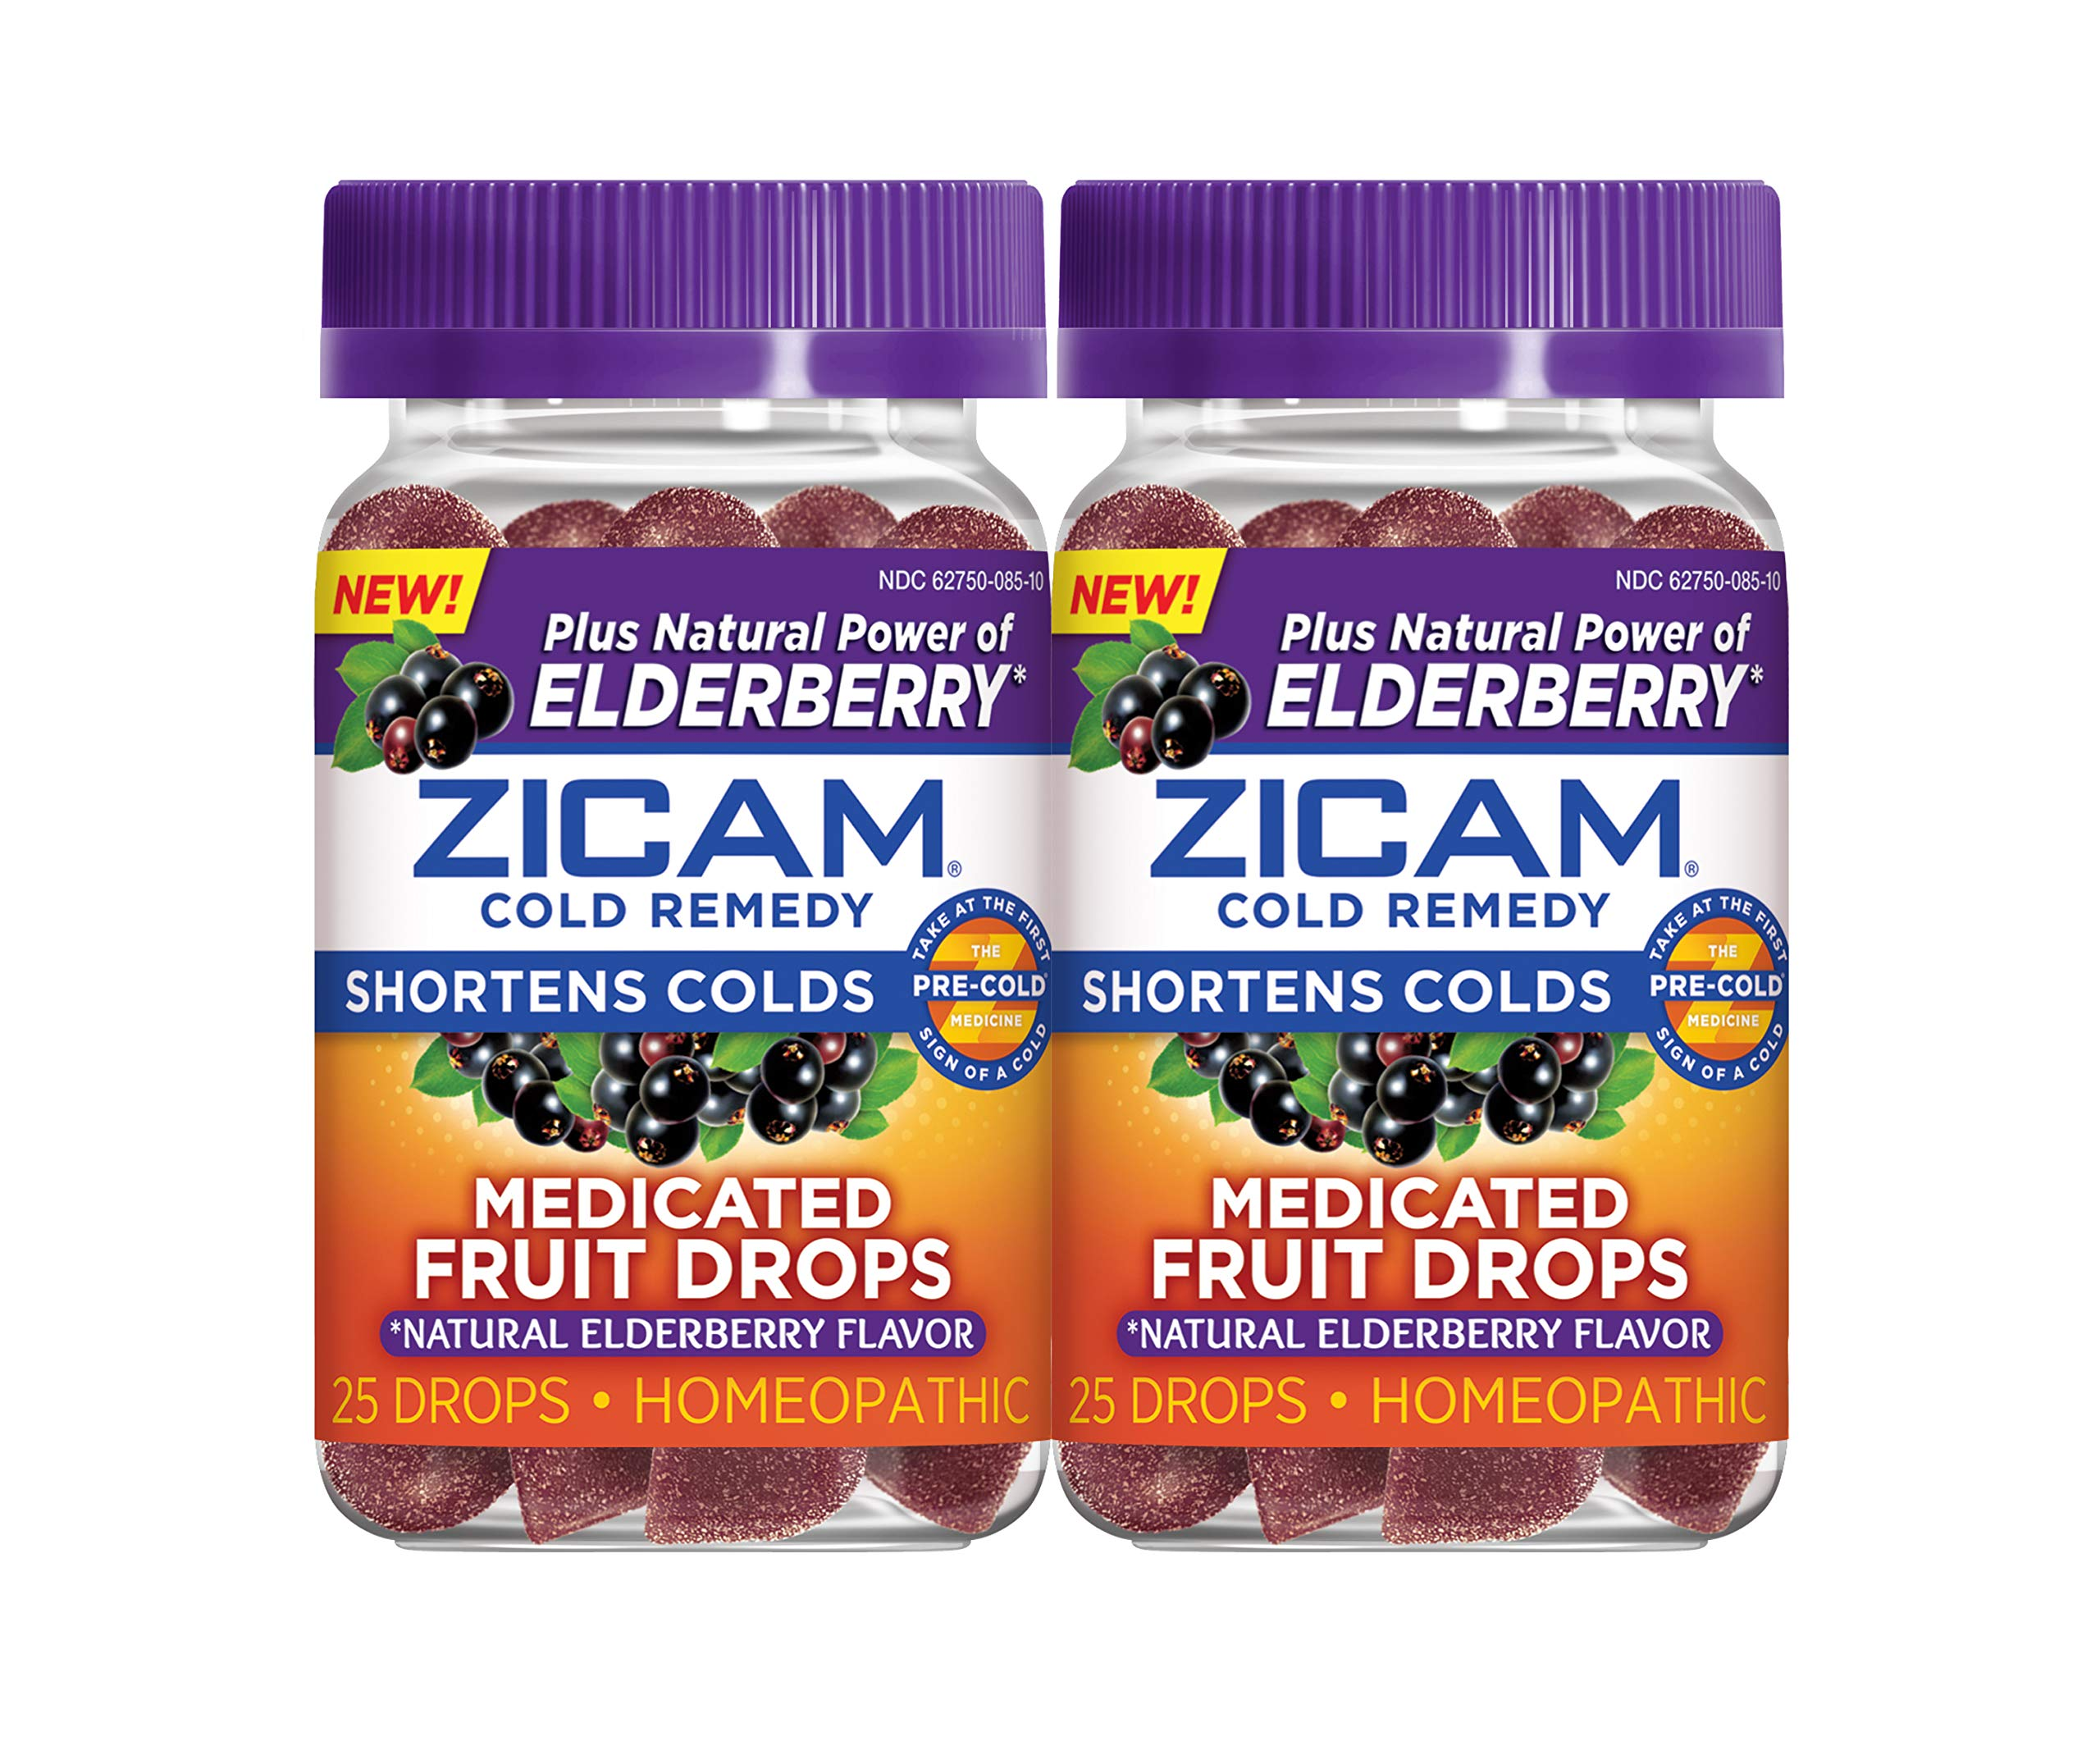 Zicam Natural Elderberry Cold Remedy Medicated Fruit Drops Homeopathic Medicine for Shortening Colds, 25 Drops, 2-Pack by Zicam